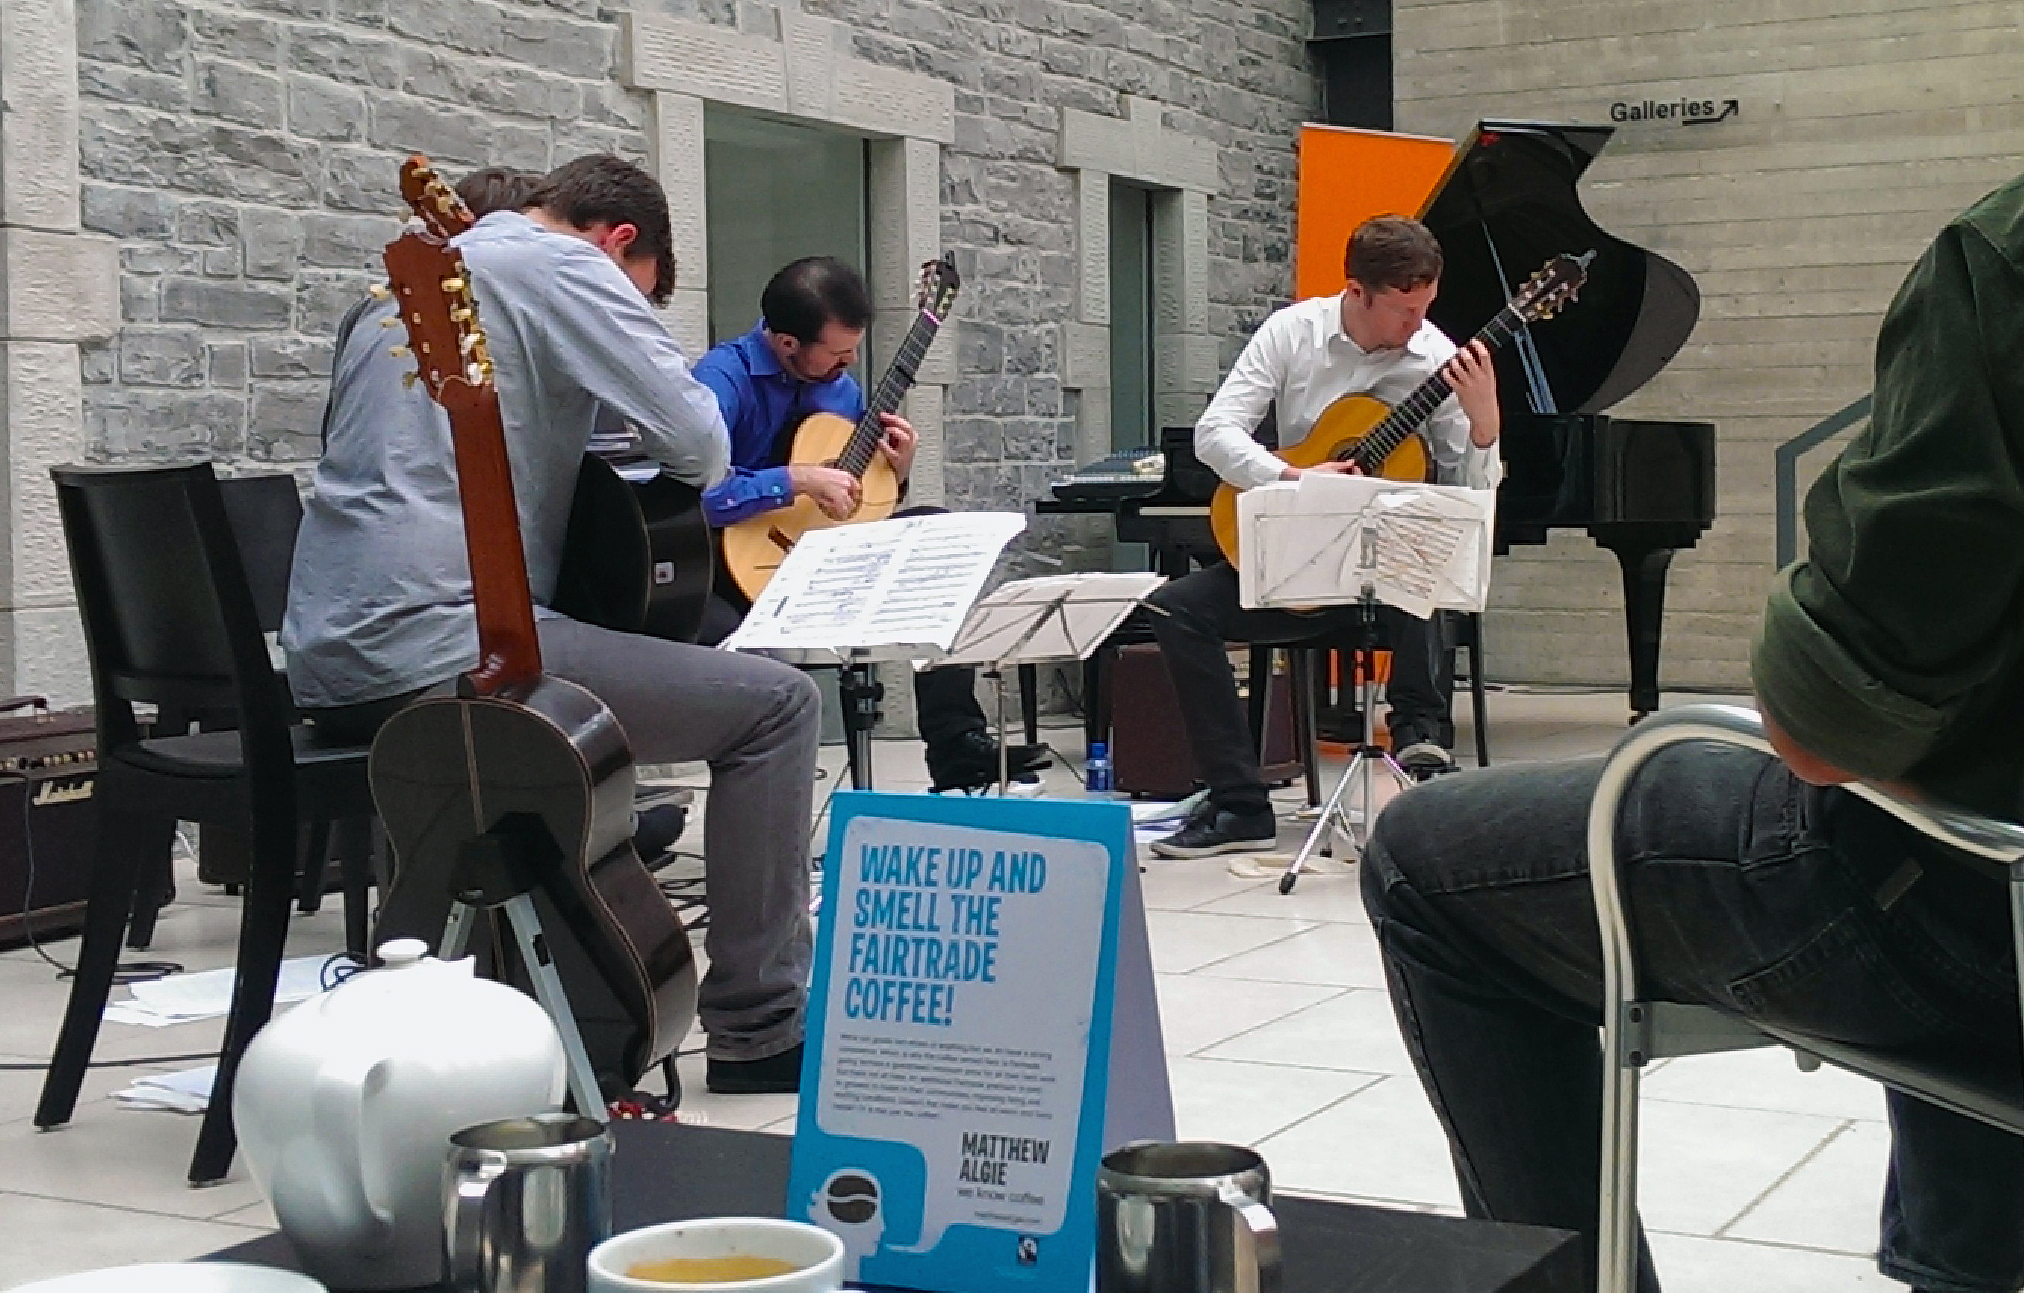 Dublin Guitar Quartet performing a Philip Glass violin concerto at an IMA in late 2013